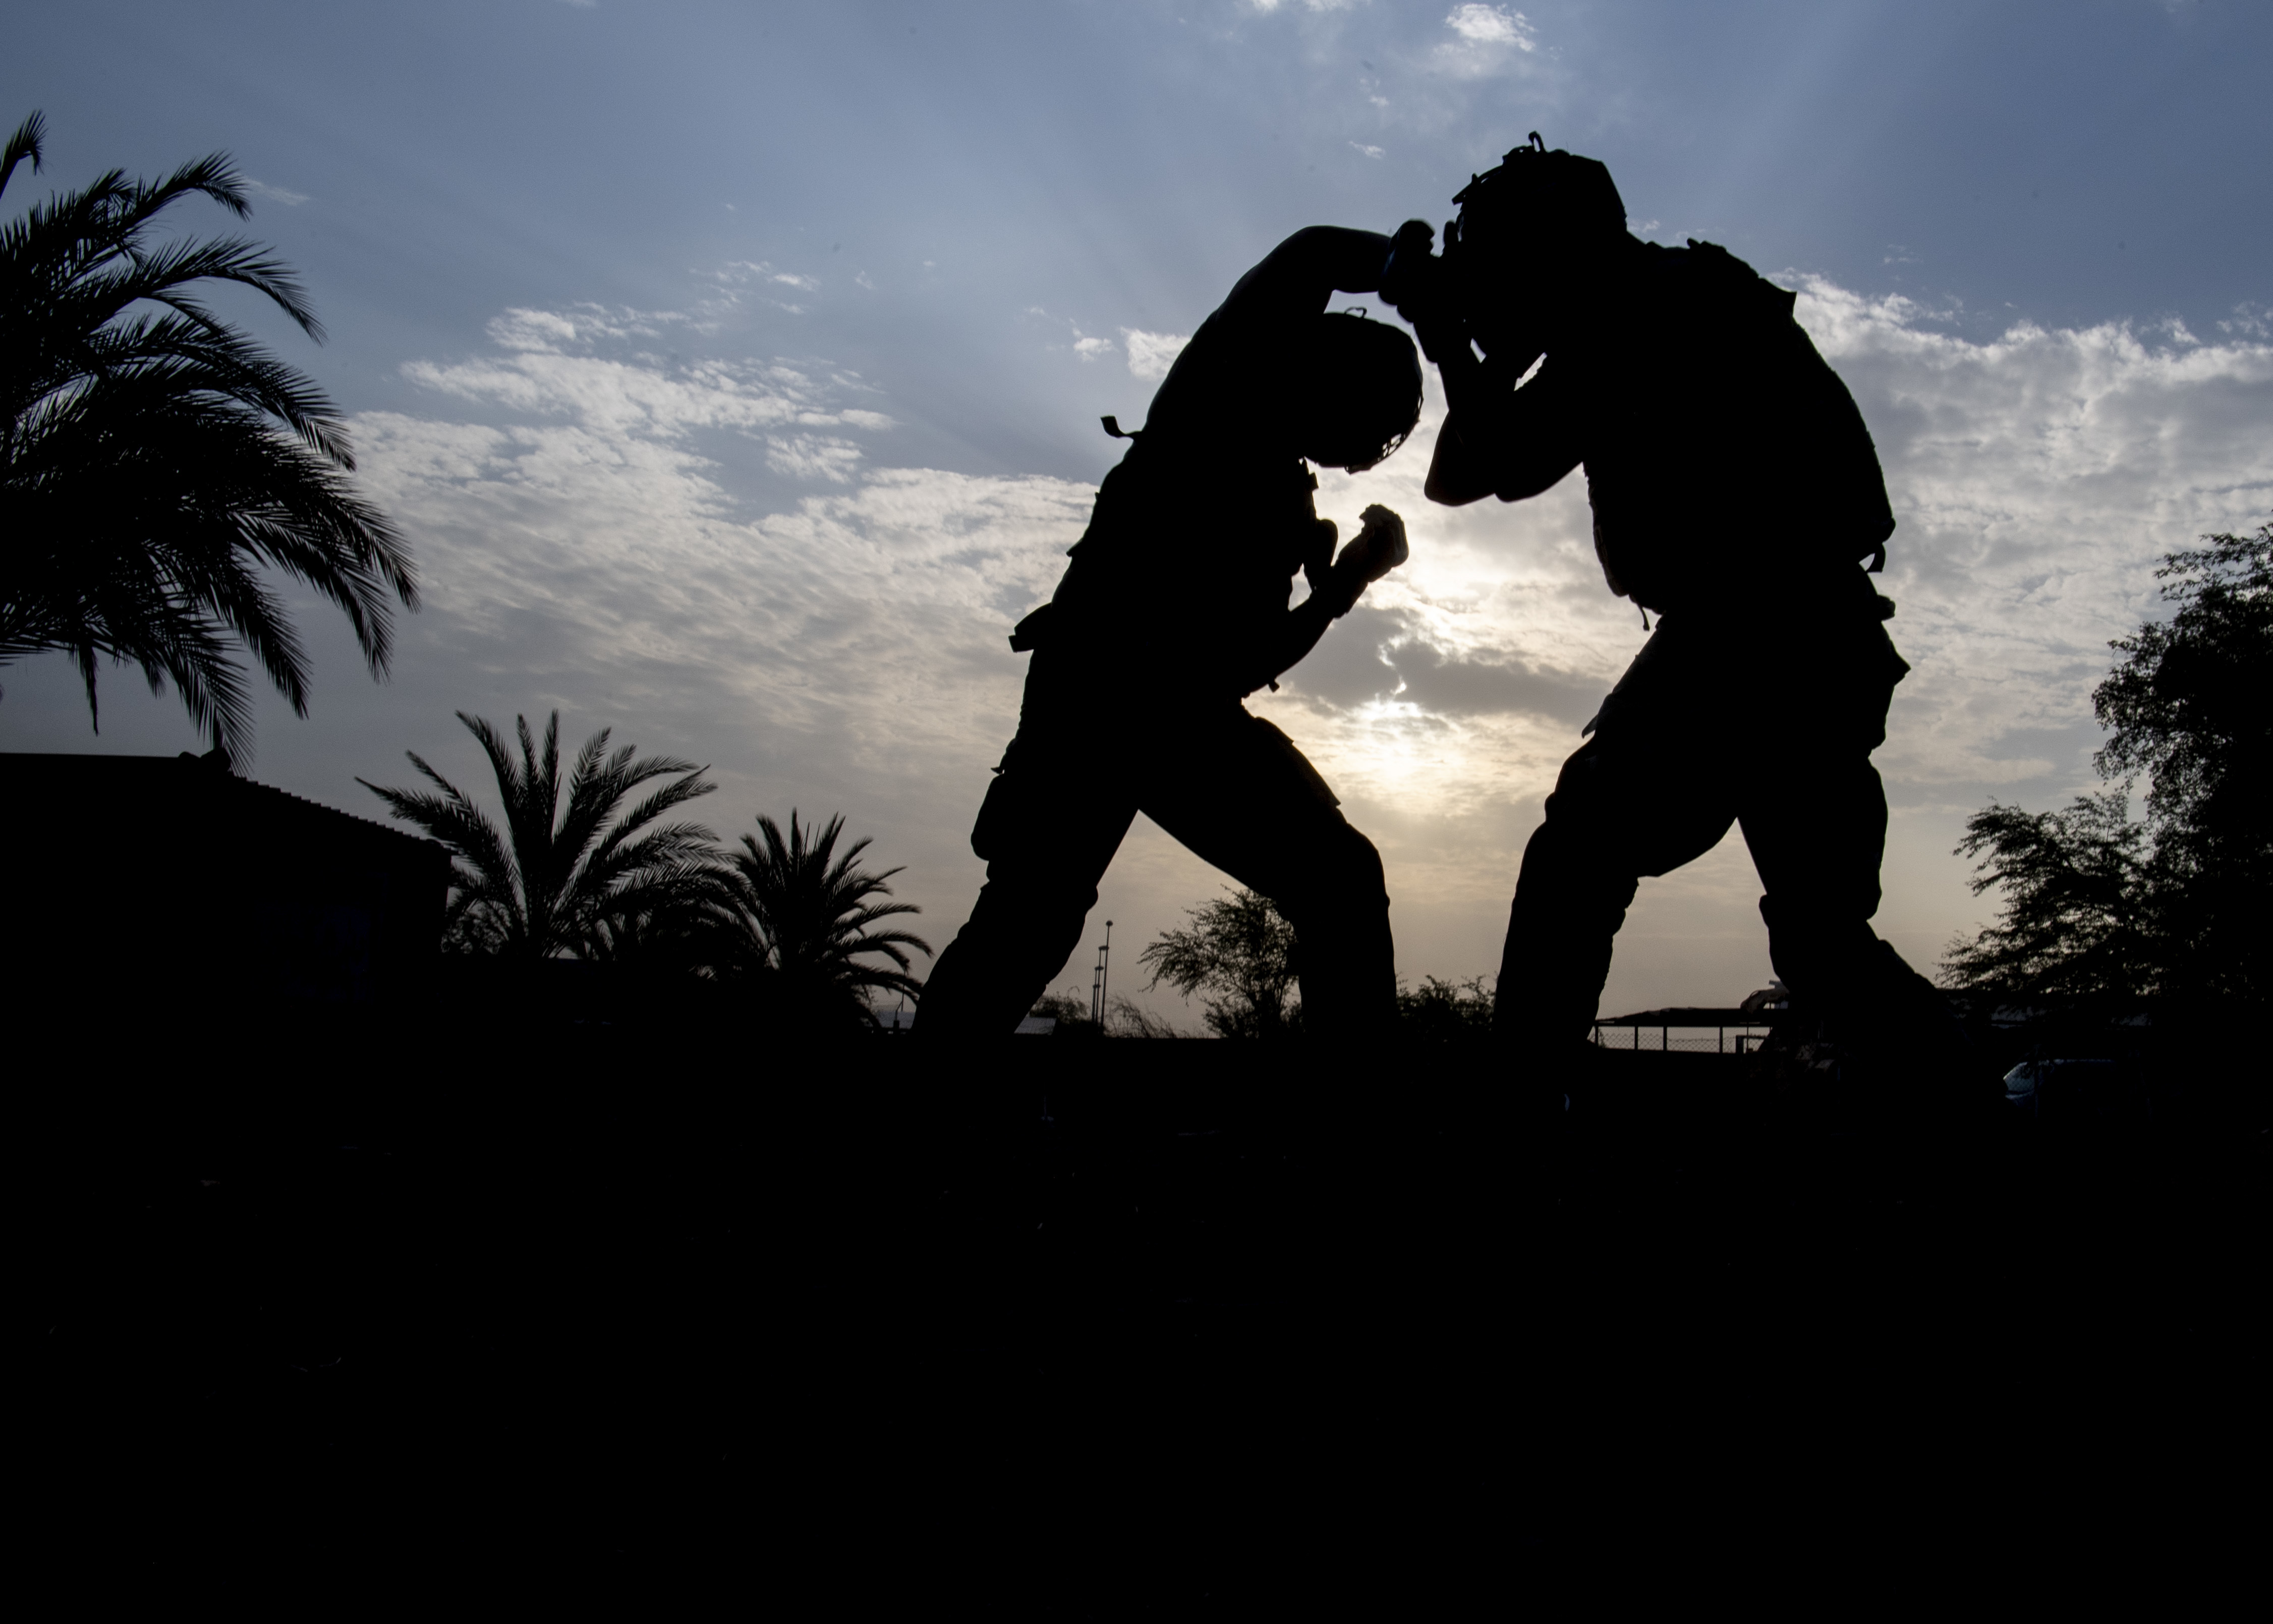 U.S. Army Soldier assigned to Combined Joint Task Force-Horn of Africa (CJTF-HOA) and French Marine assigned to the 5th Overseas Intermarines Regiment (RIAOM) spar during a combatives exchange at Djibouti Air Base, Djibouti, Sept. 2, 2019. The purpose of the joint training was to share French Marine and U.S. Army combative techniques and further the relationship between the two forces. (U.S. Air Force photo by Staff Sgt. J.D. Strong II)